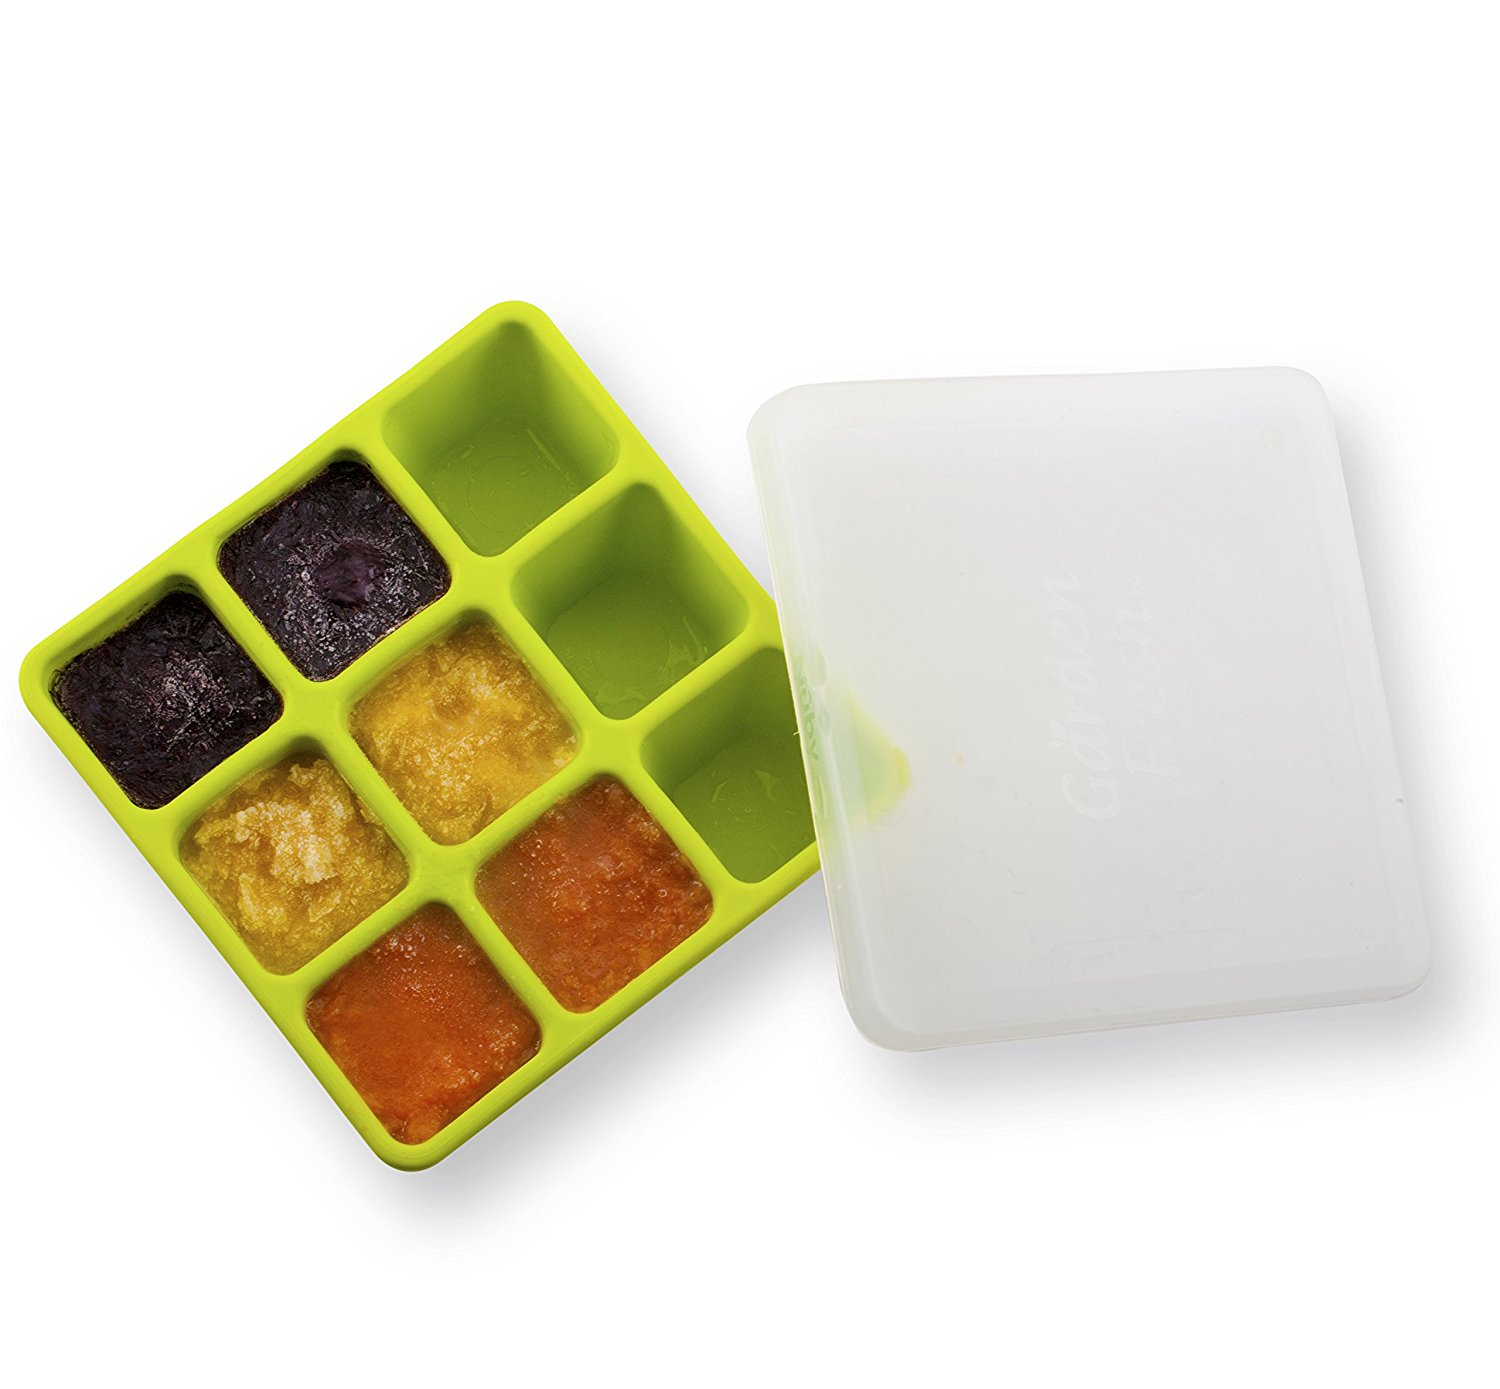 Garden Fresh Freezer Tray with Lid, Colors May Vary, Freezer tray features nine 1 oz. compartments for storing baby food By Nuby